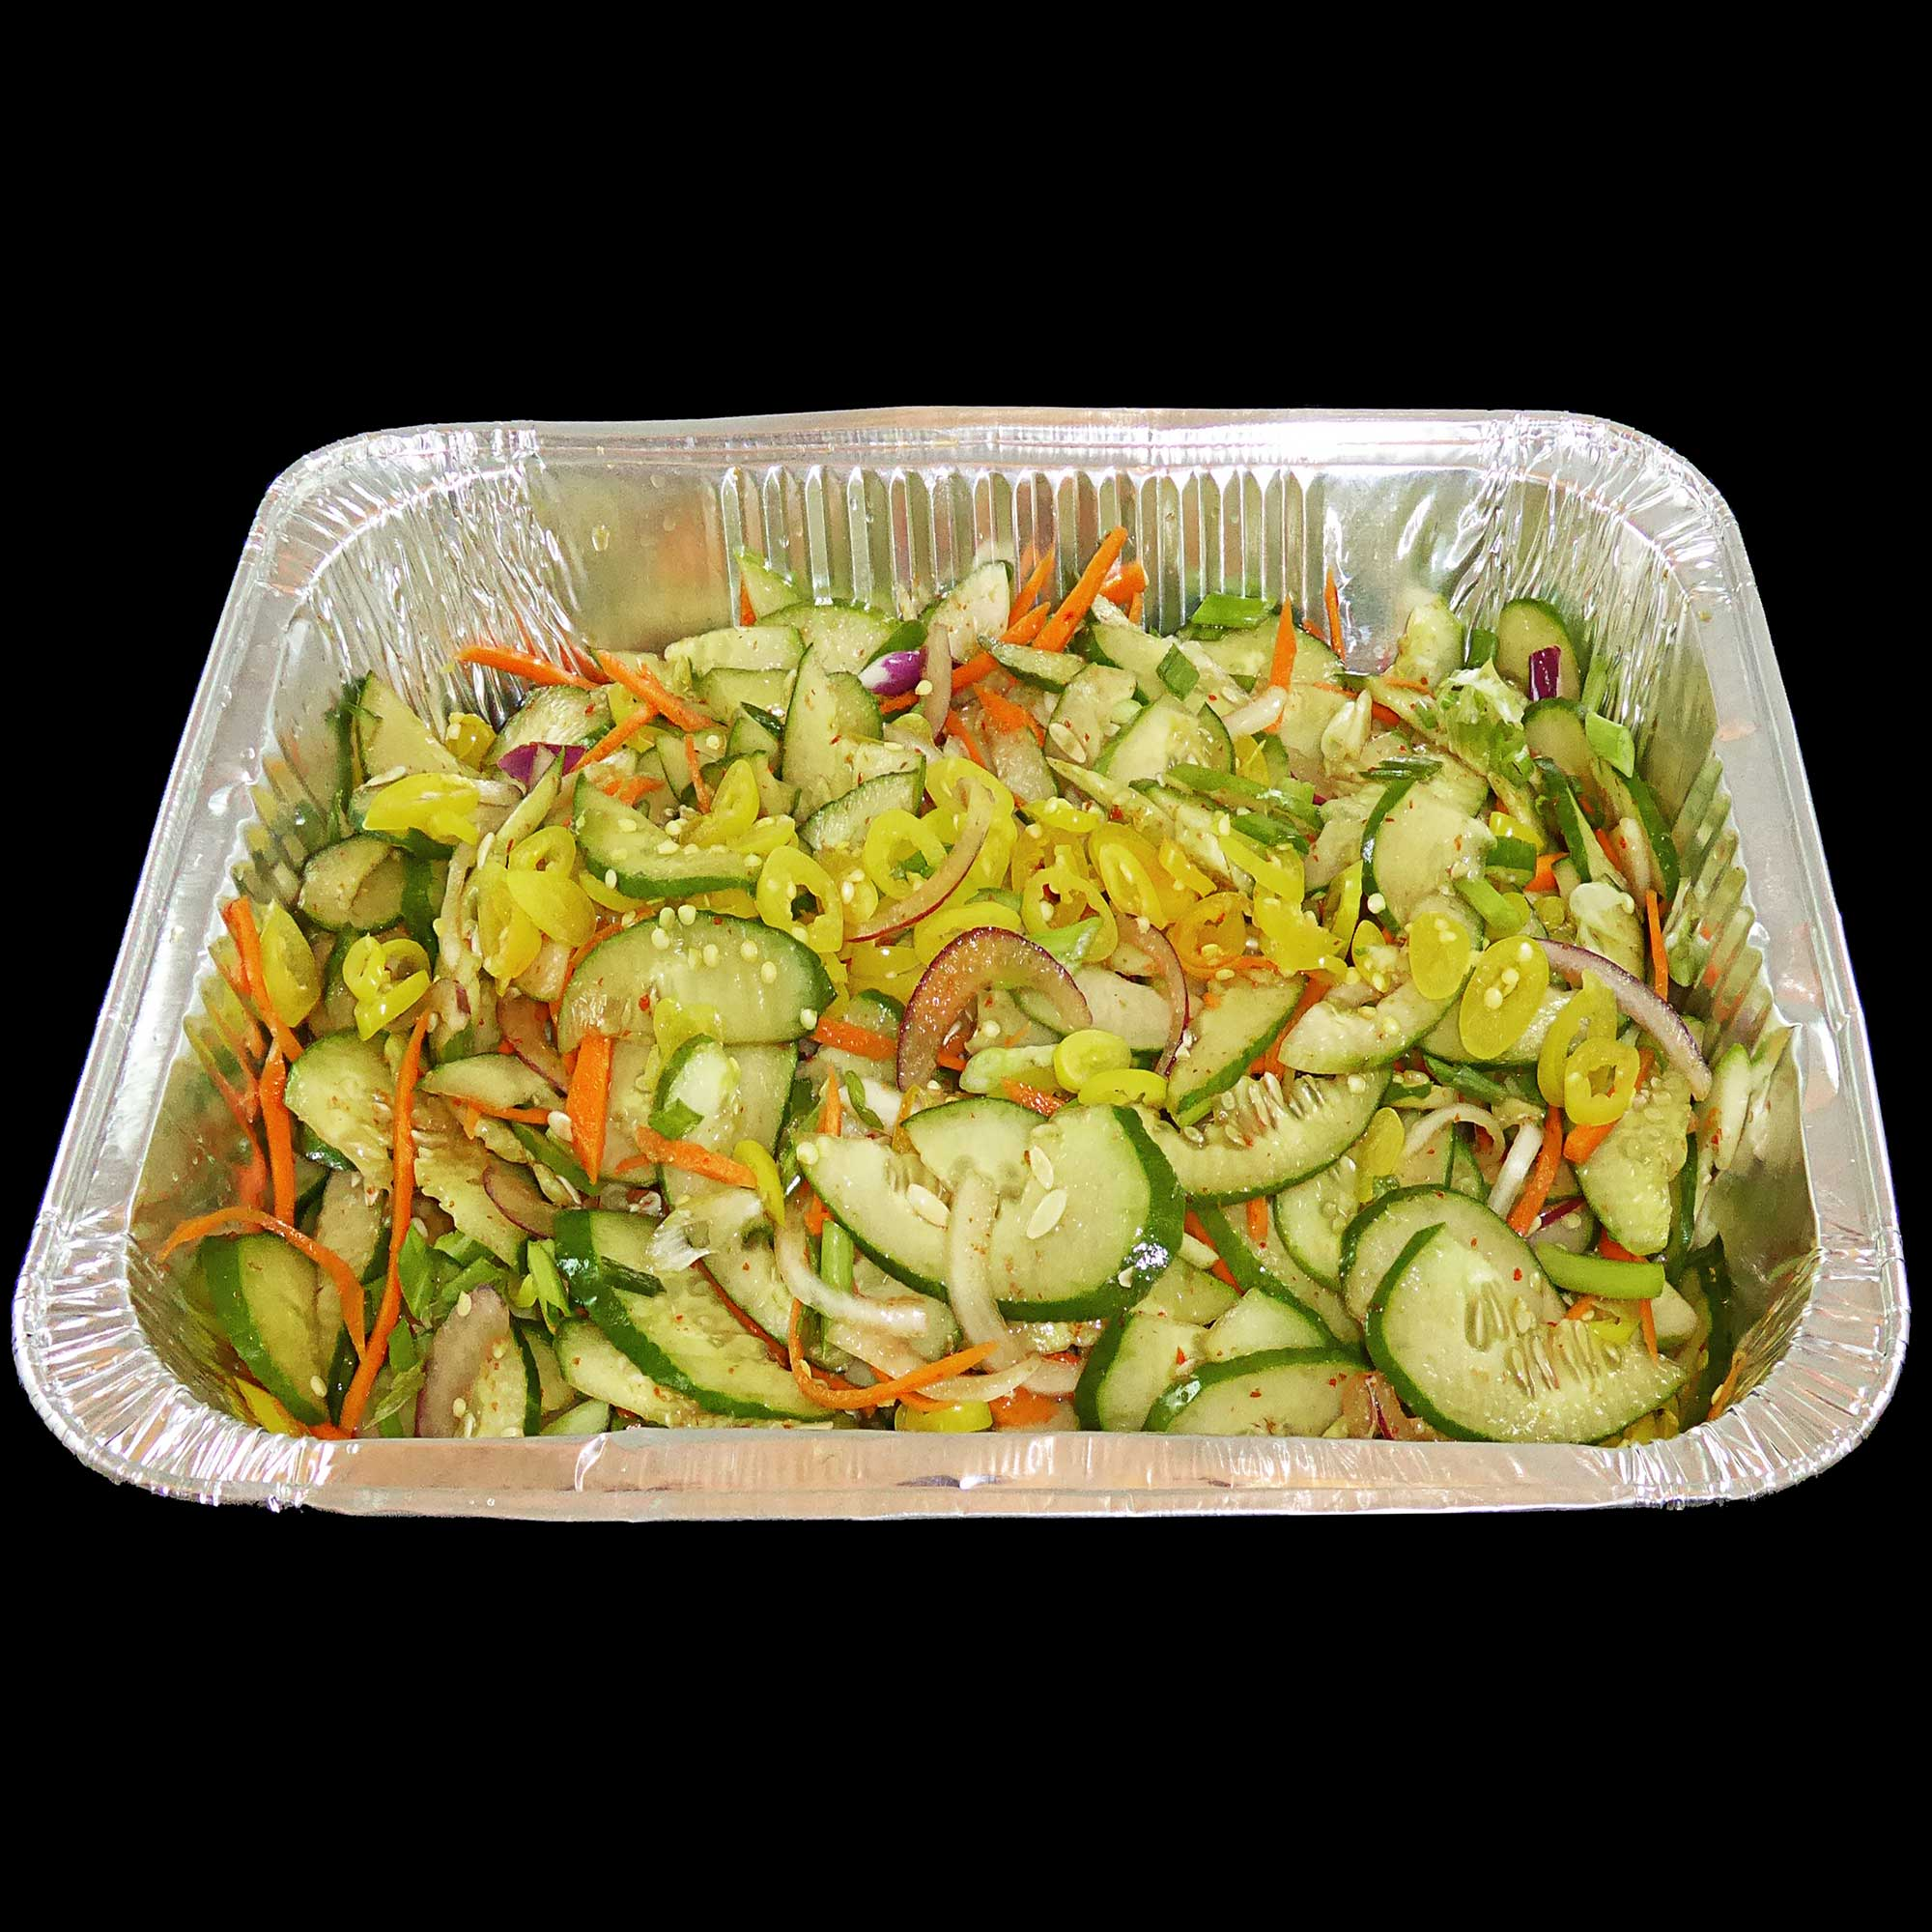 "Pika Salad&nbsp;&nbsp;<strong style=""font-size: 20px;""><span style=""color: rgb(255, 0, 0);""><span style=""font-family: Calibri, sans-serif;"">New!</span></span></strong>"